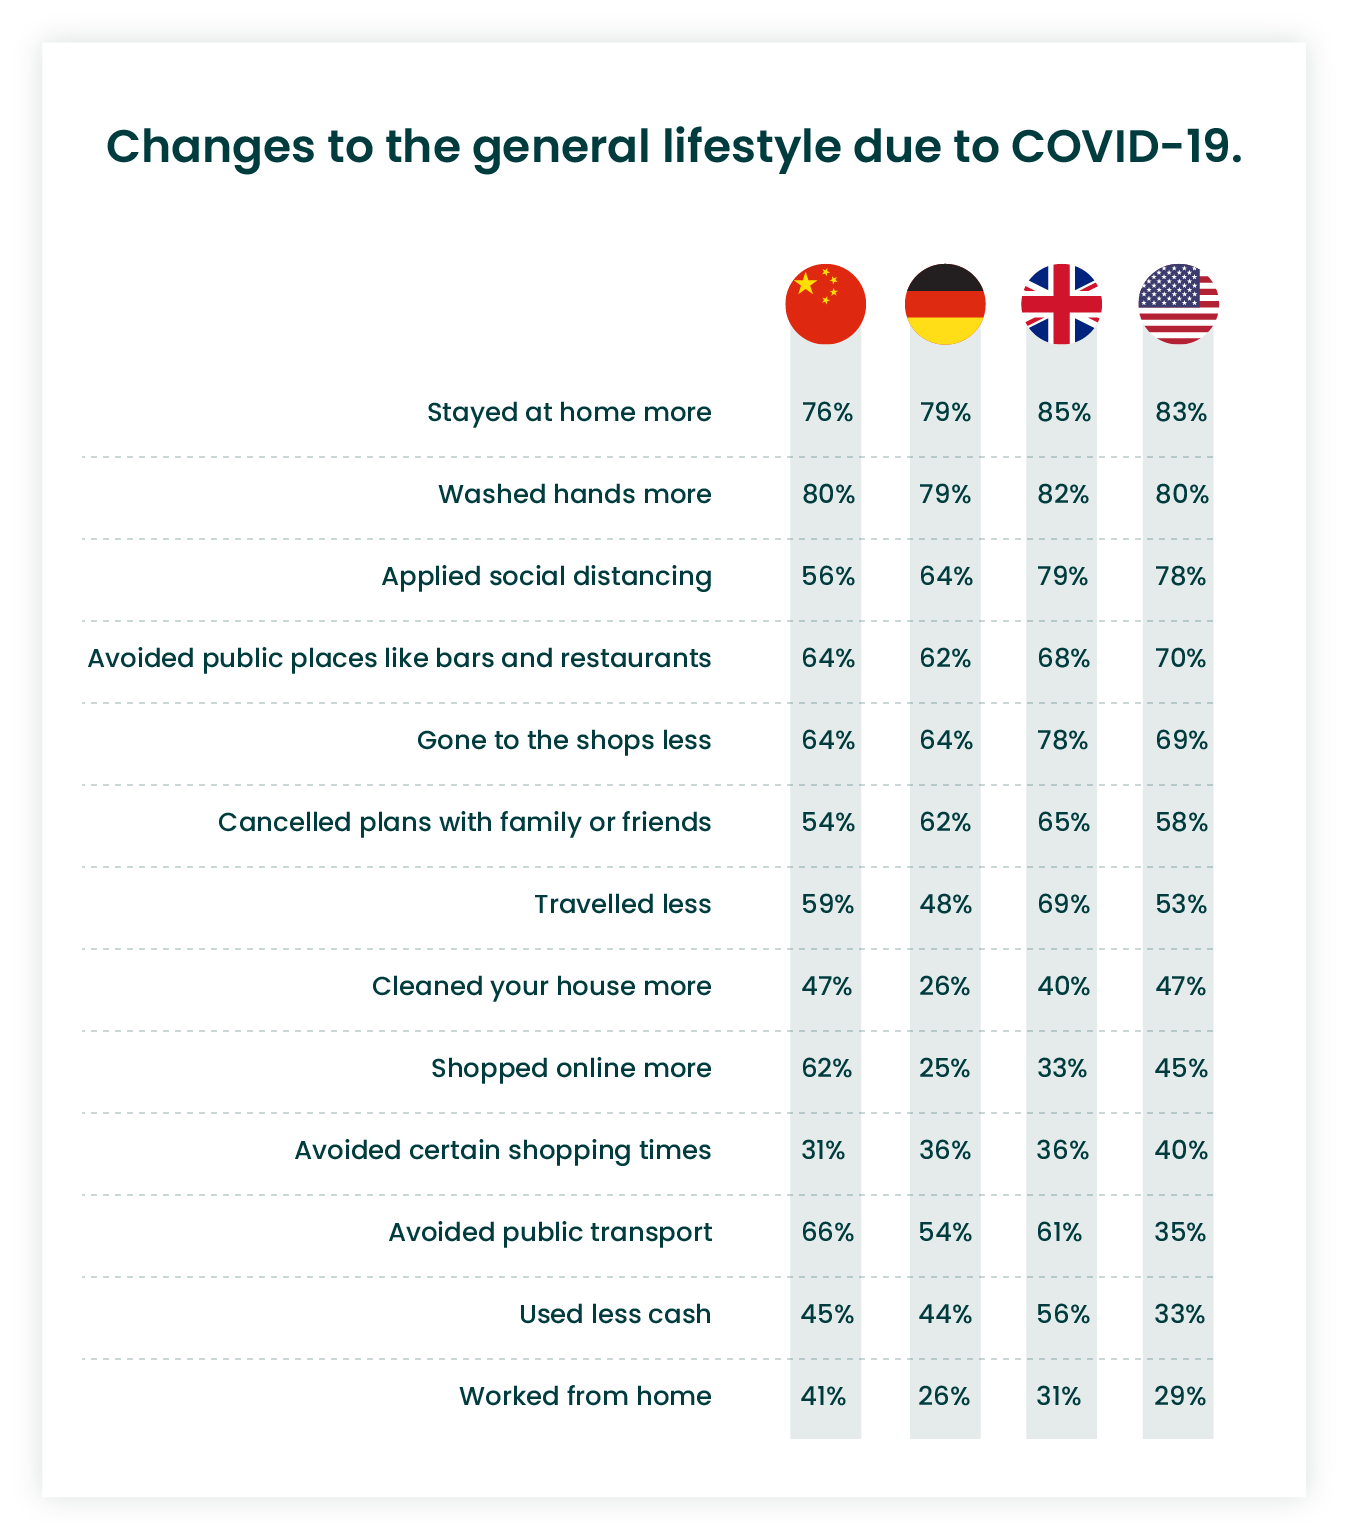 COVID-19 affects people everyday life statistics